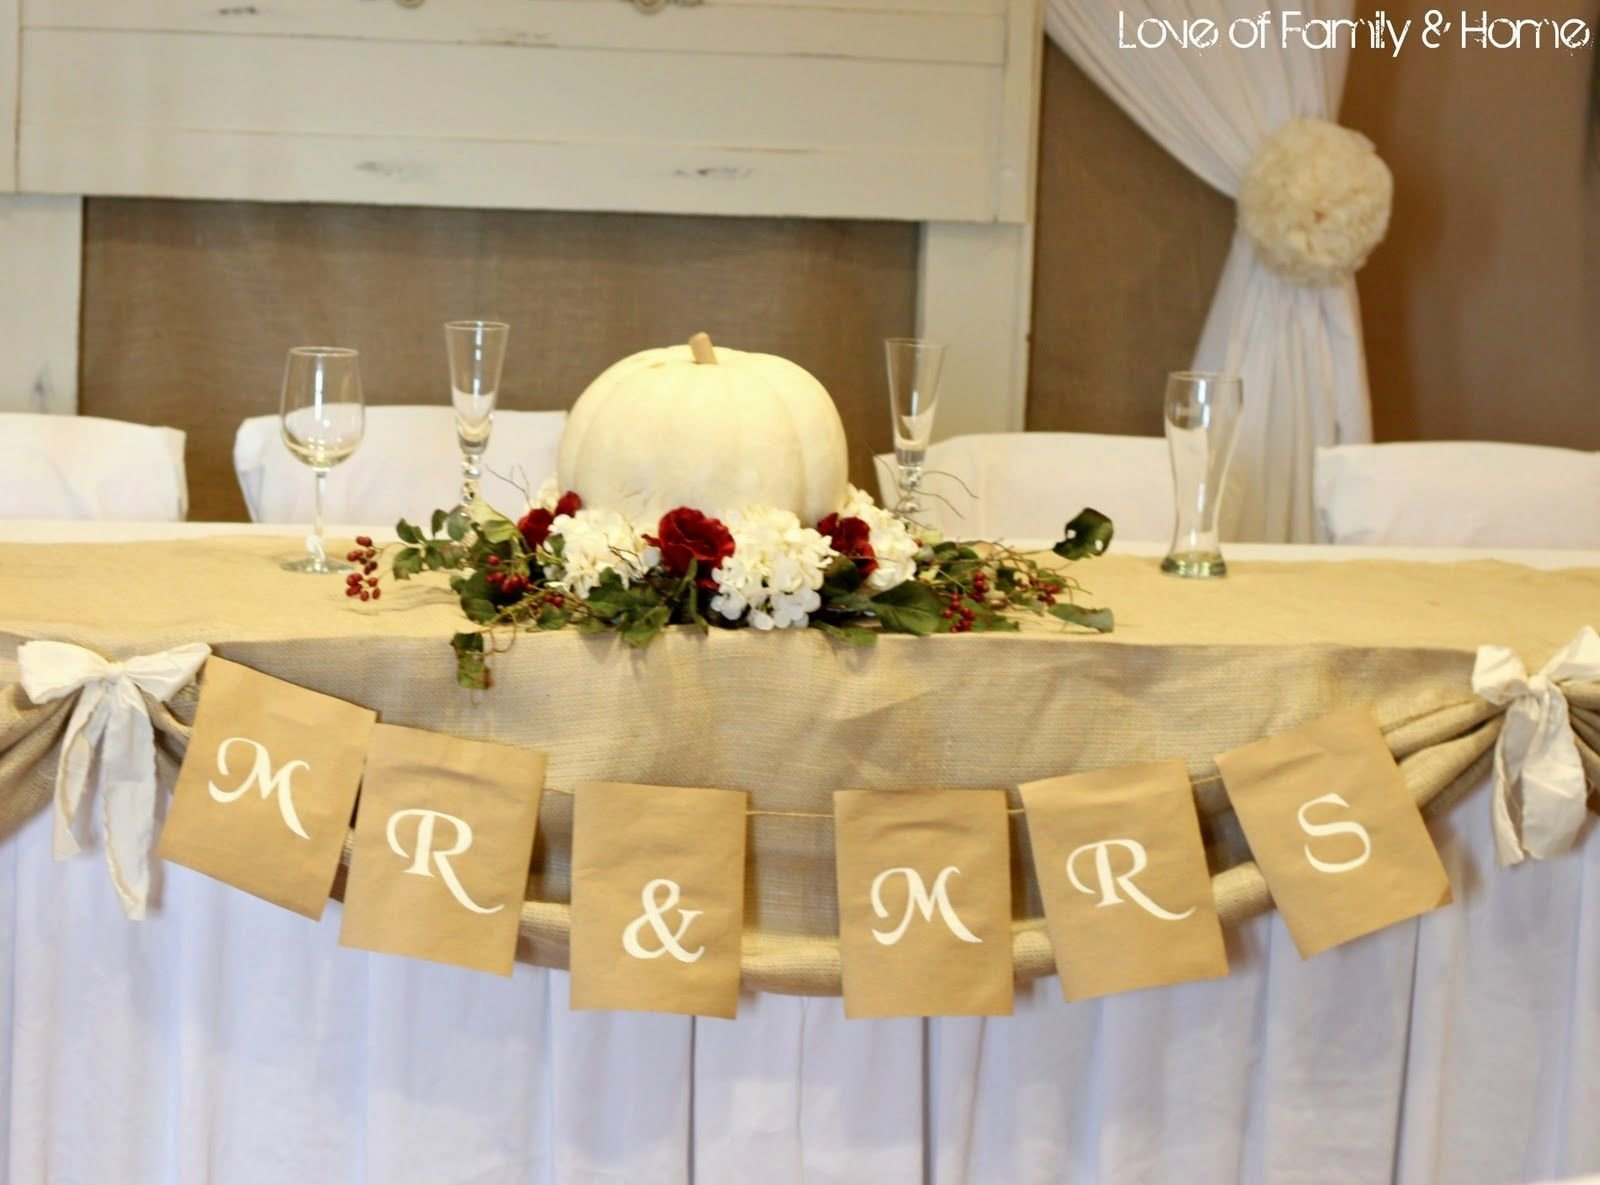 10 Awesome Anniversary Ideas On A Budget ideas on a budget fall wedding decorations diy decoration cheap 50th 2020